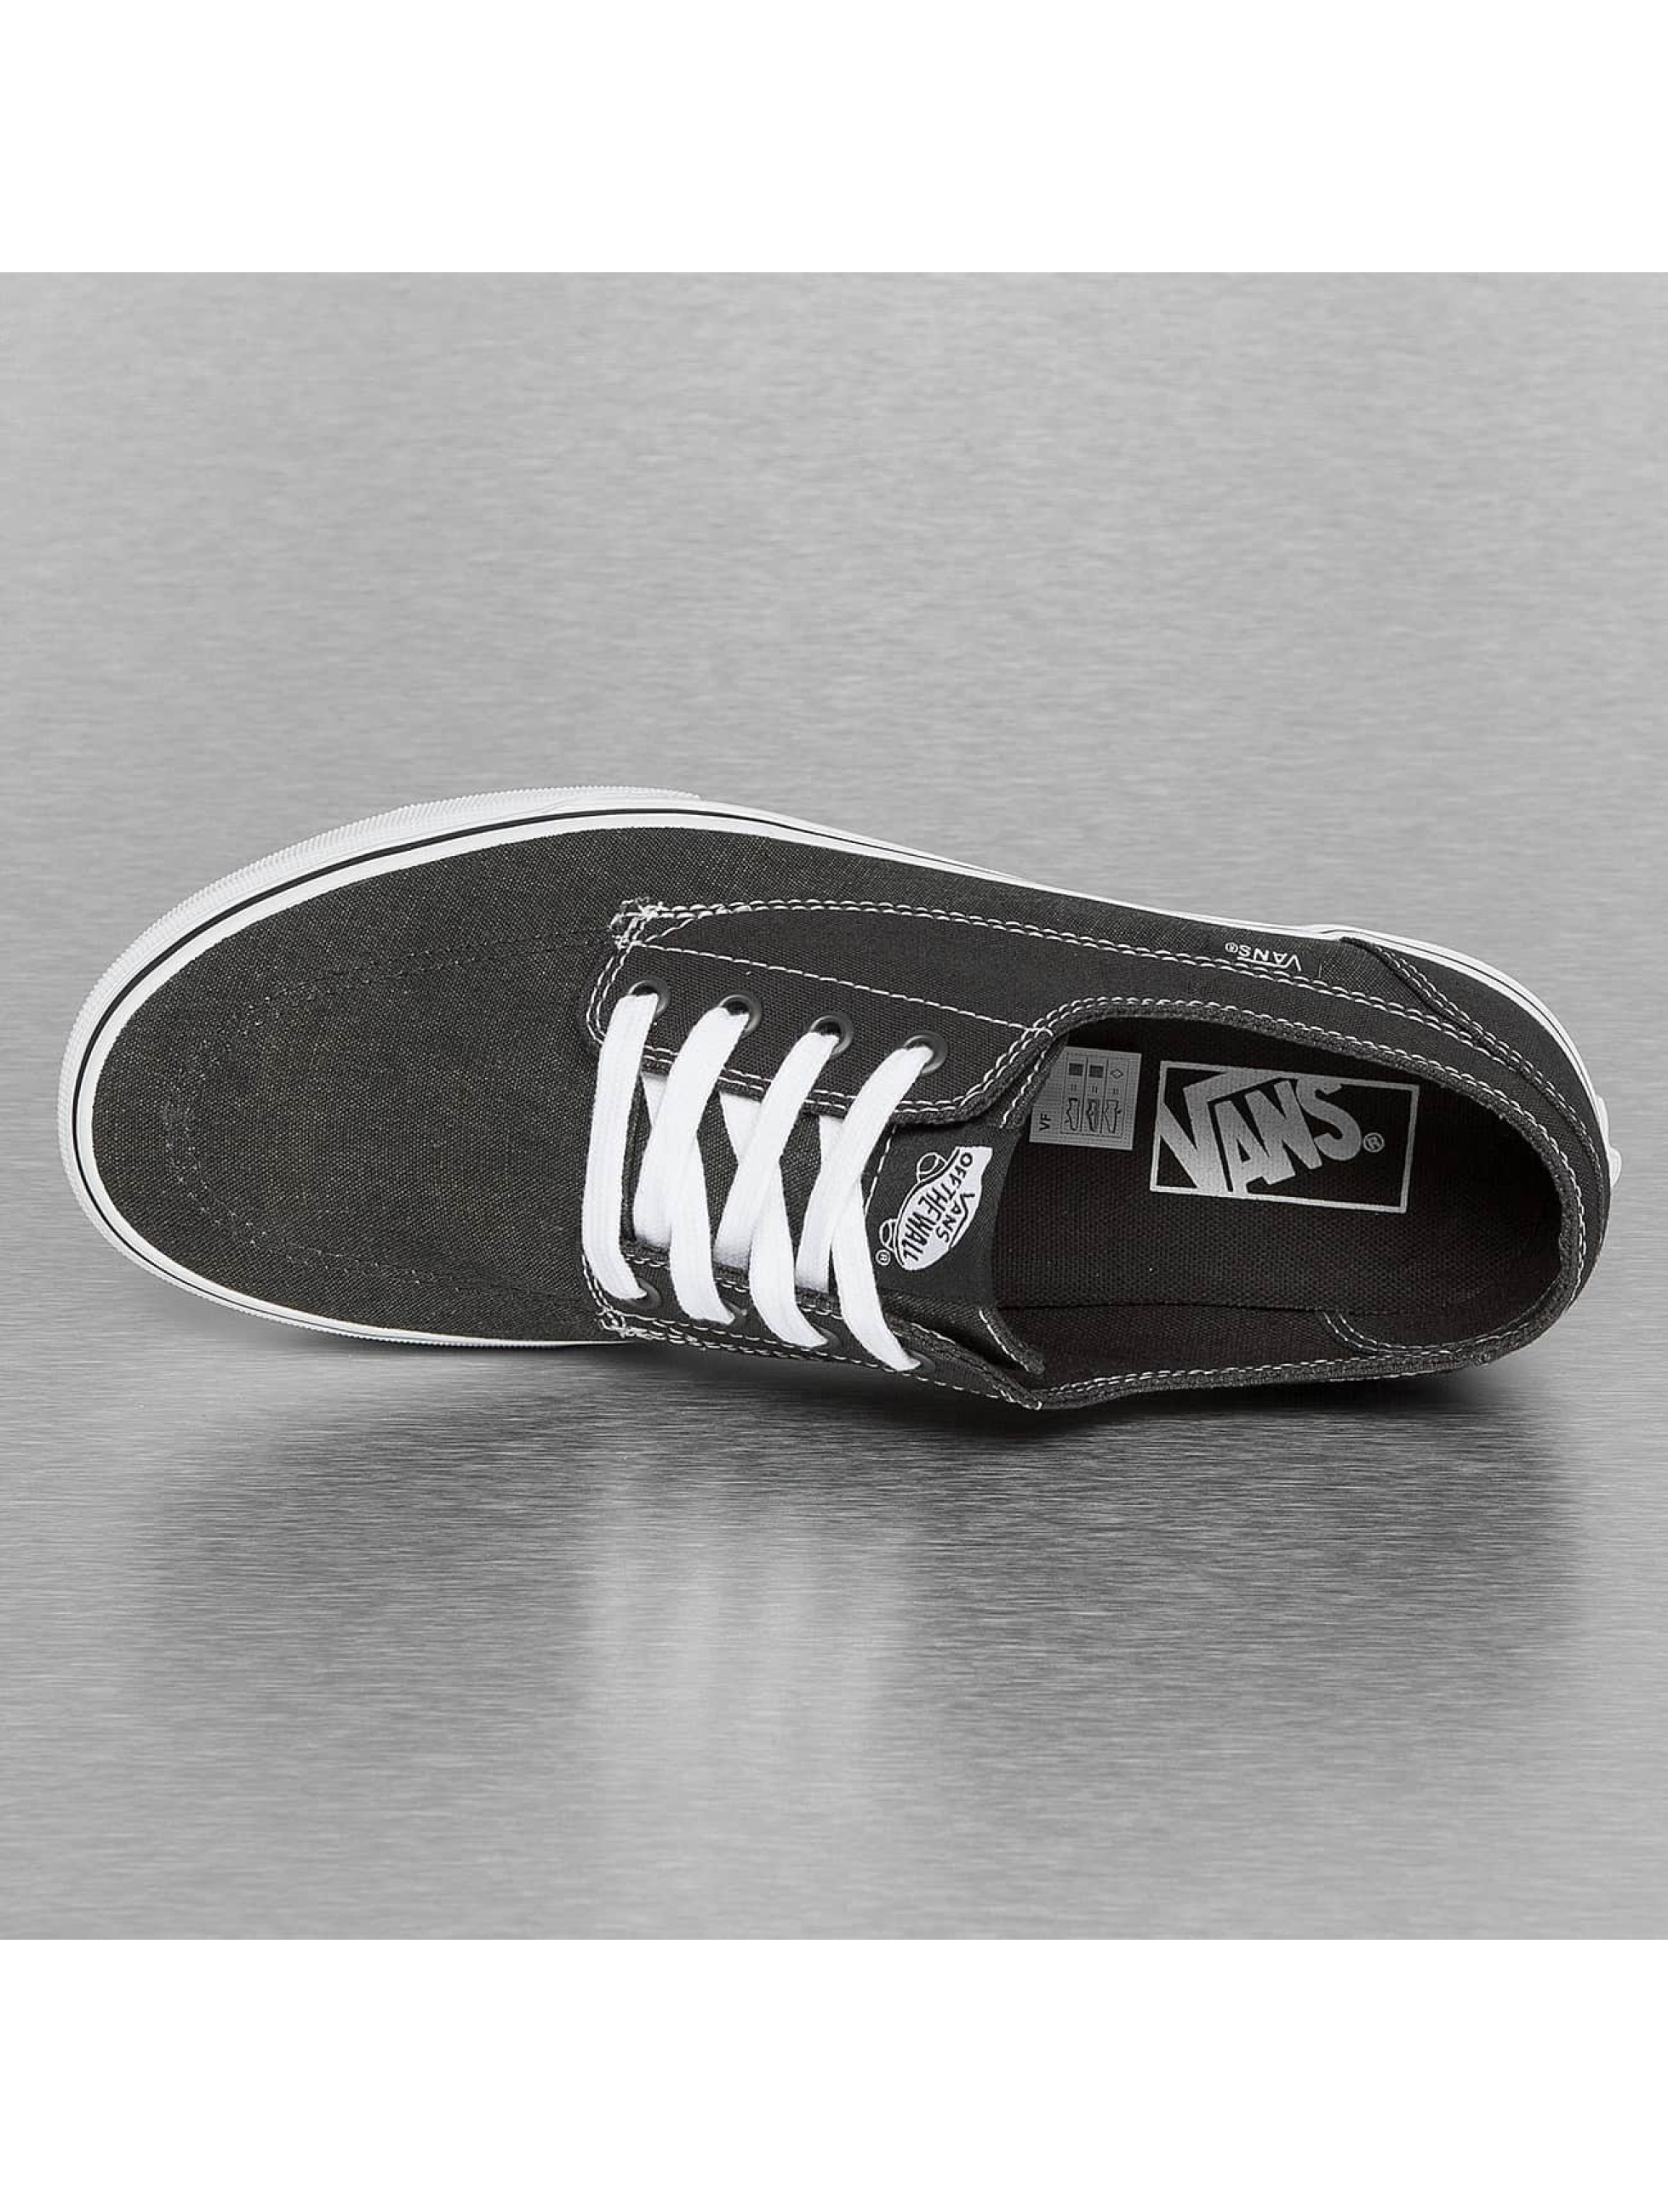 Vans Sneakers Brigata Washed Canvas black